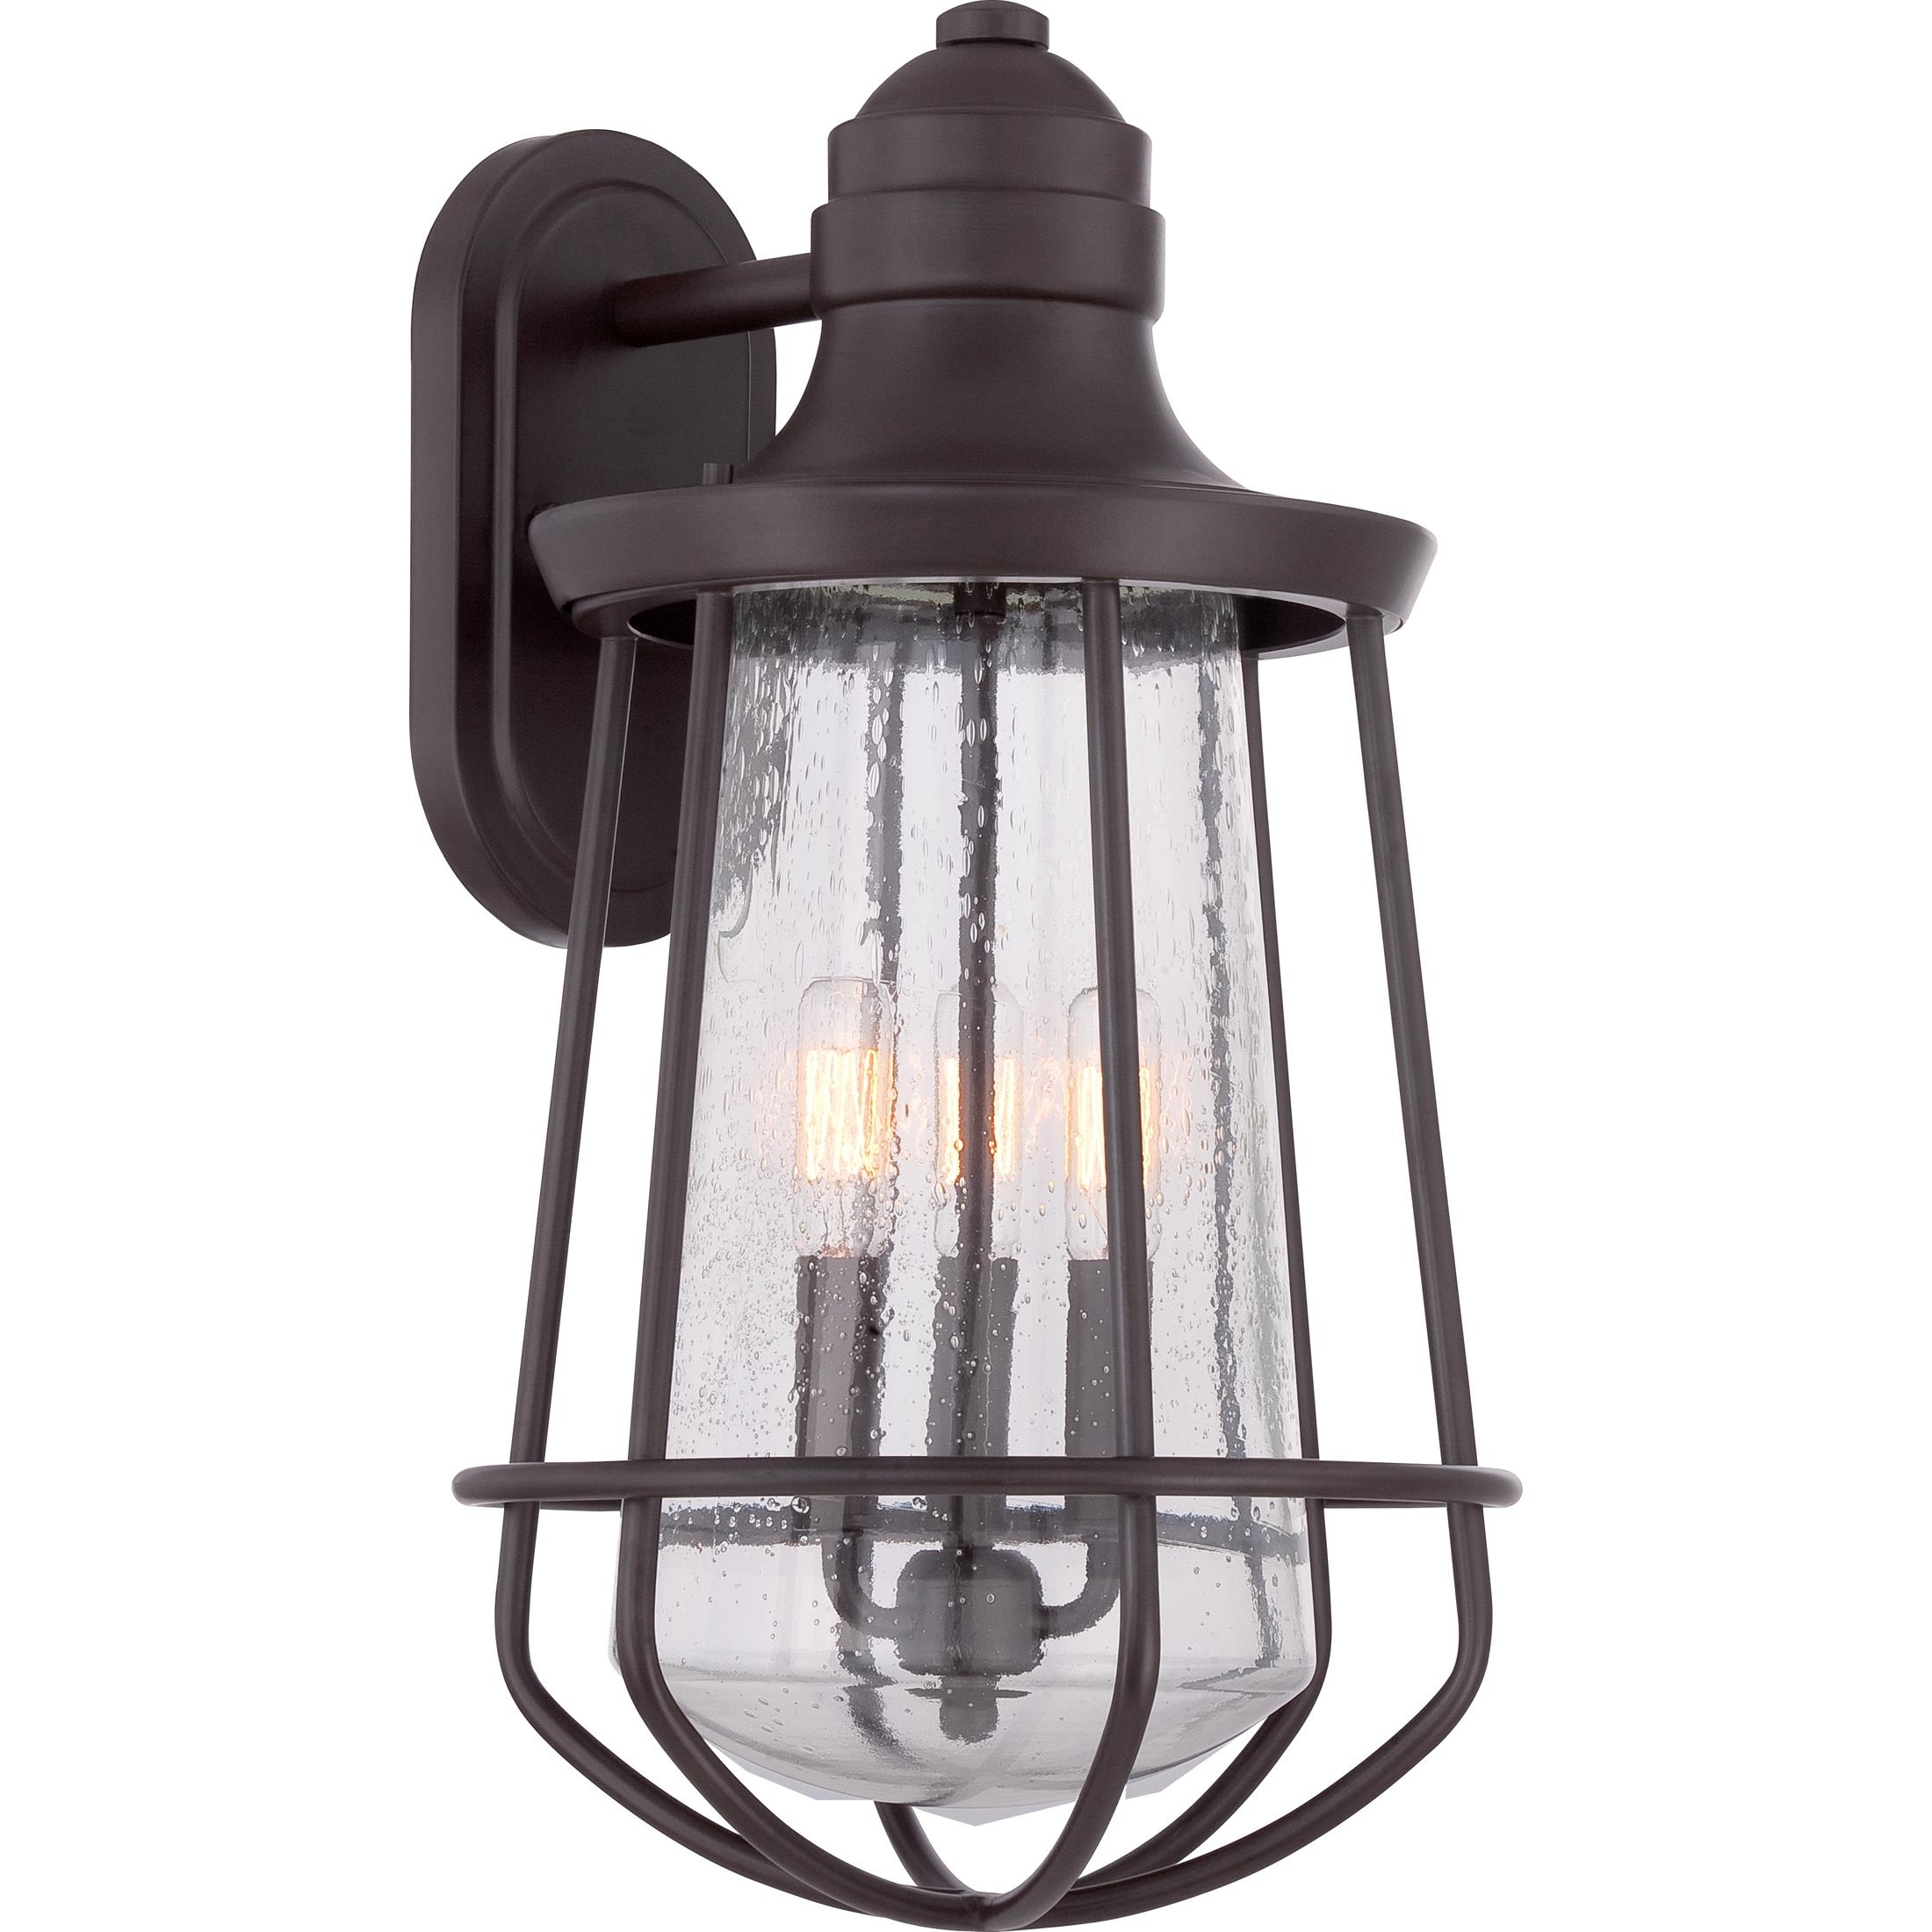 Inspiration about Quoizel Lighting Mre8410Wt Shipped Direct Within Quoizel Outdoor Wall Lighting (#11 of 15)